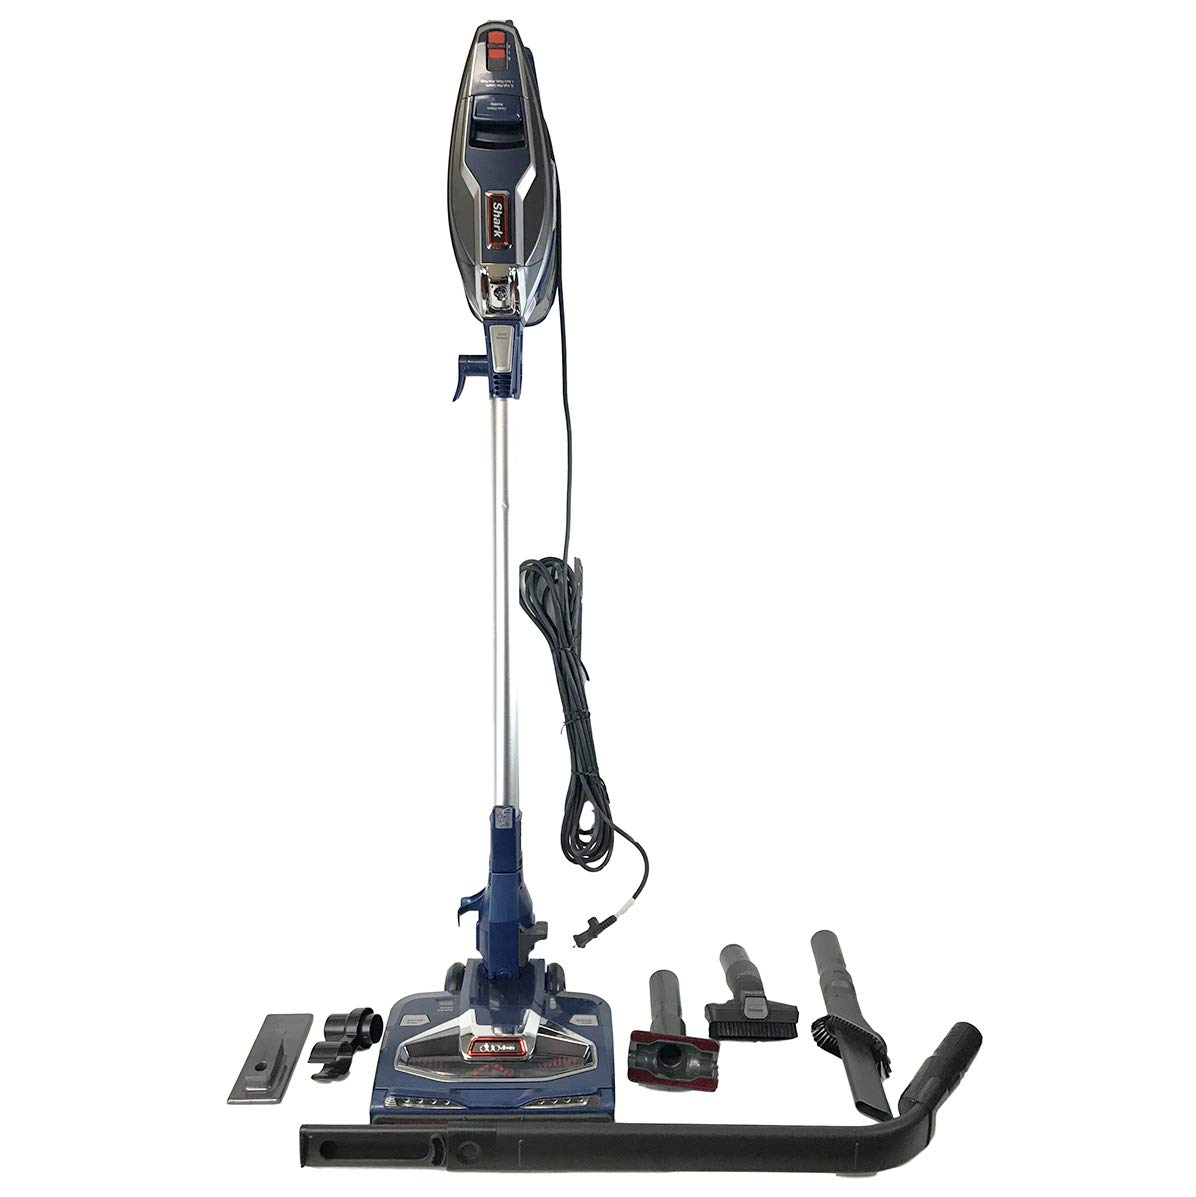 Shark Rocket with DuoClean Technology Ultra-Light Corded Stick Vacuum Cleaner HV384QBL Upholstery Tool and Motorized Floor Nozzle for Bare Floor, Rug and High Pile Carpets HV384Q Blue Renewed